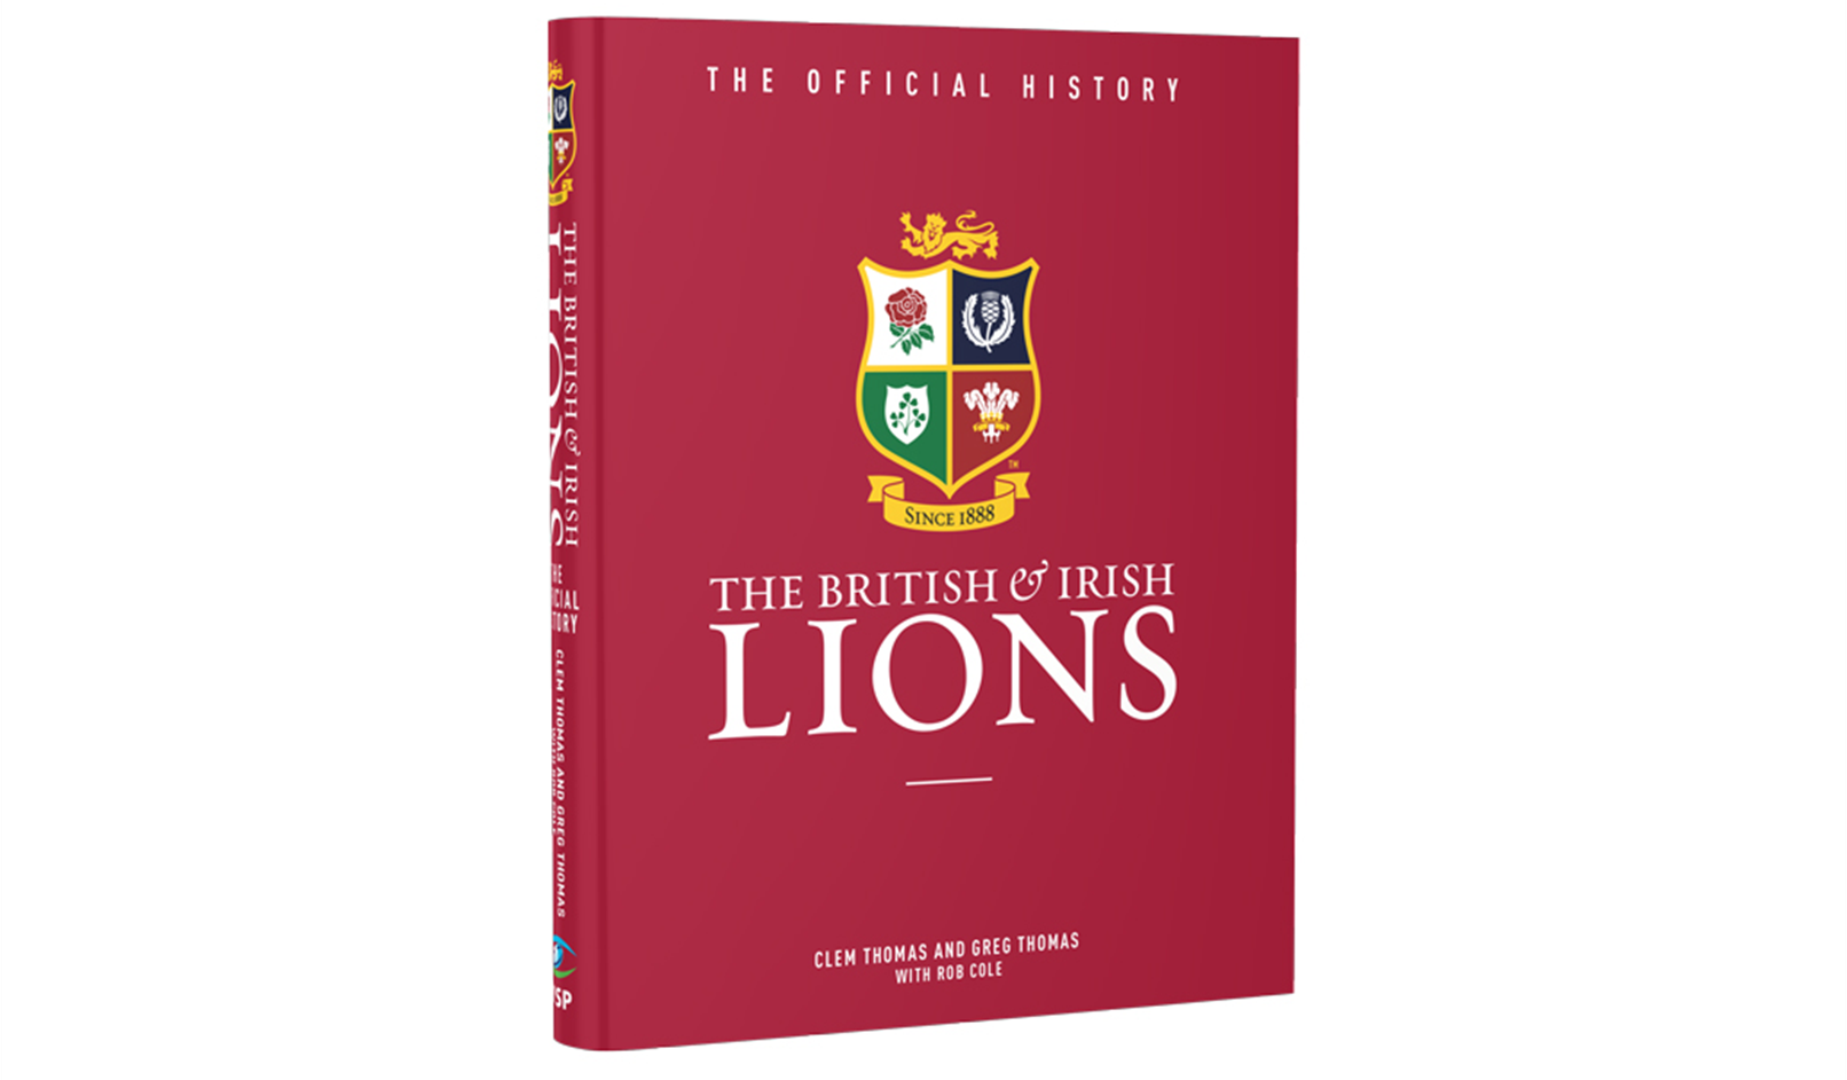 12 Days of Christmas – Win an official Lions book